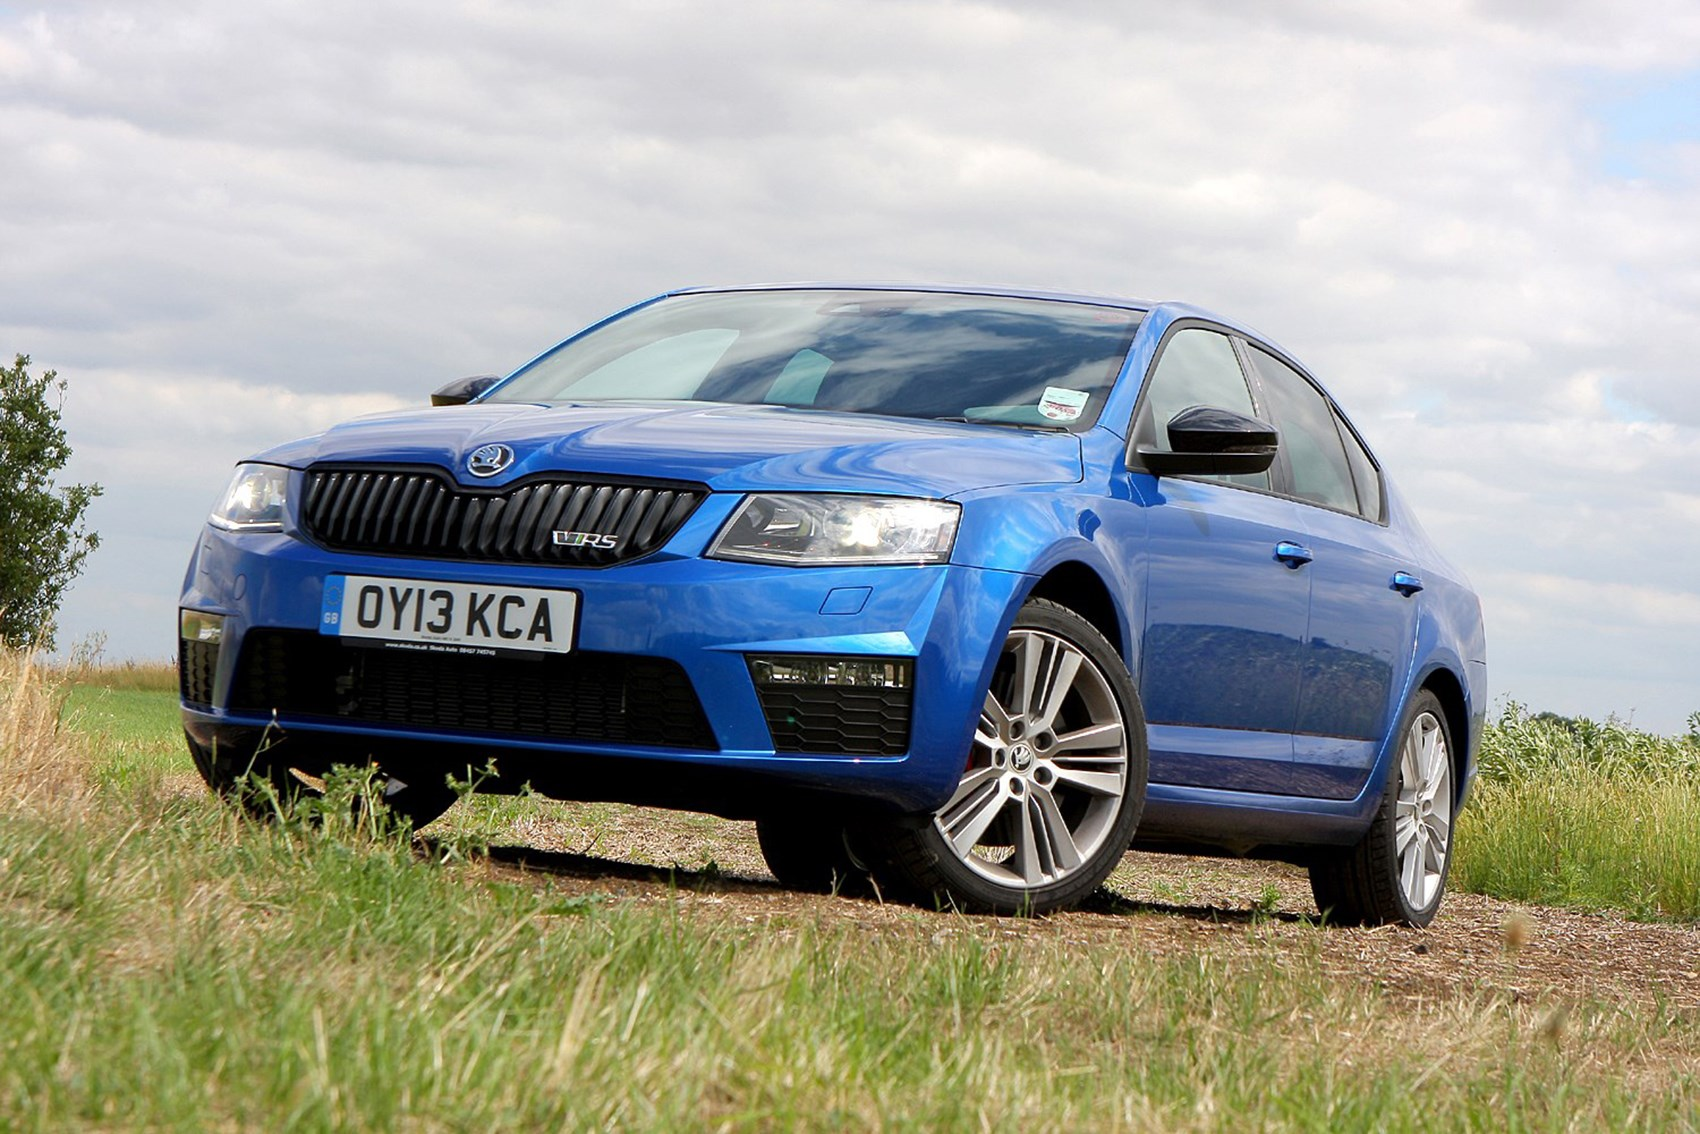 Skoda Octavia vRS - used hatchbacks for less than £4k